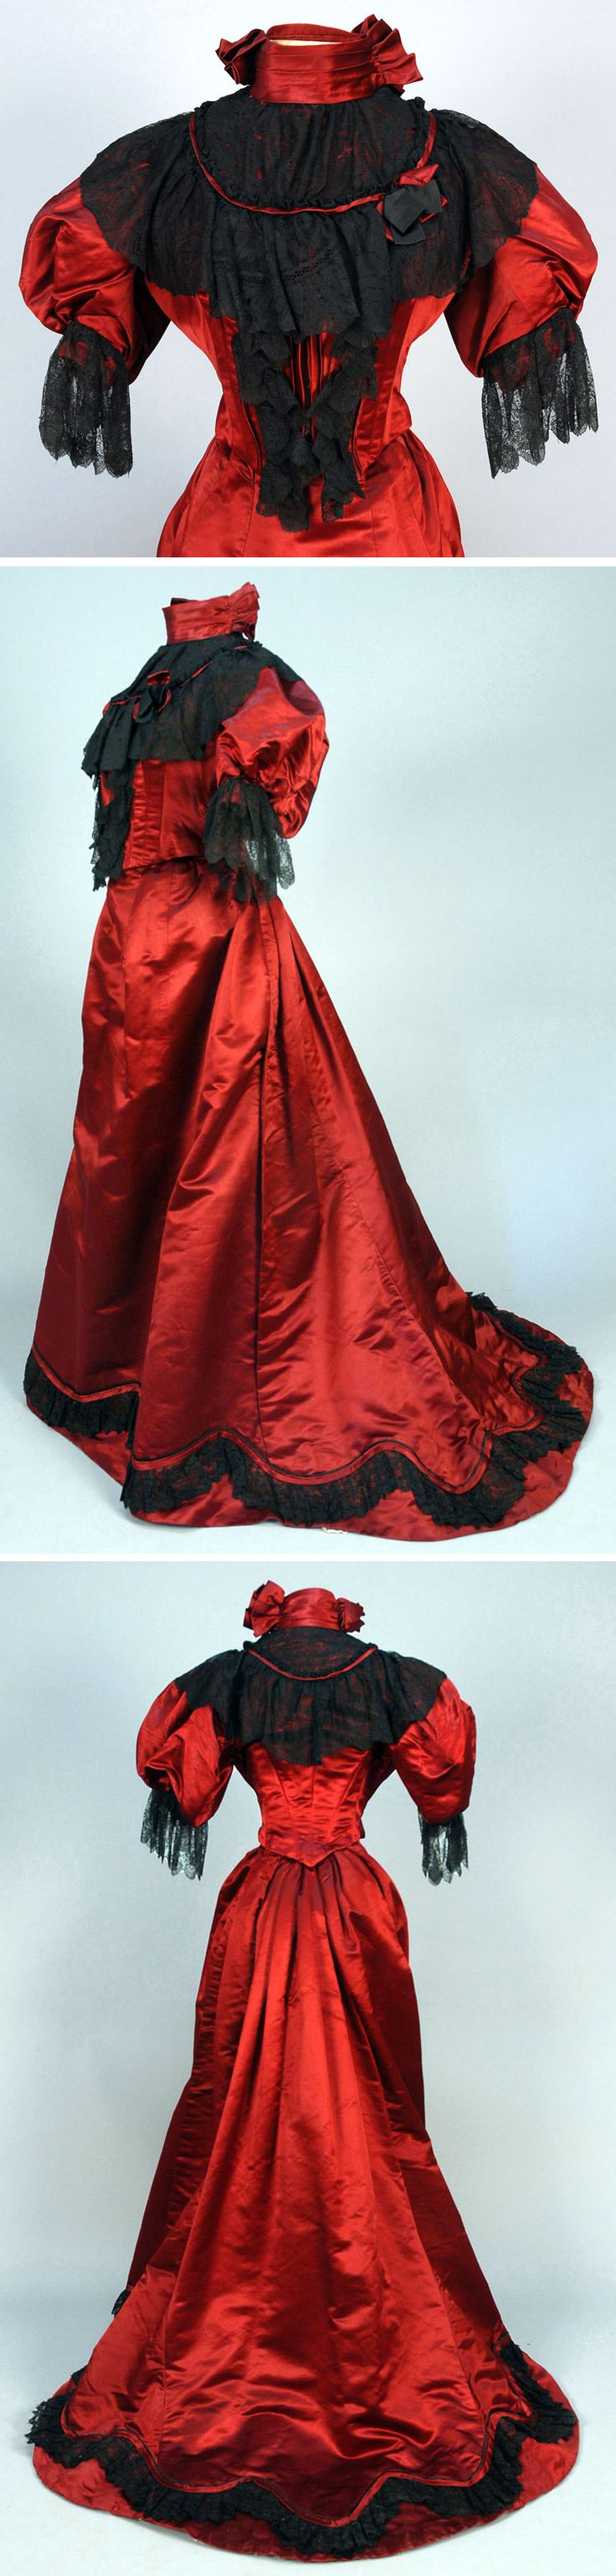 Dress ca. 1890. Two-piece garnet silk with high, boned-neck bodice with short puffed sleeve and black lace trim. Sheer neckline, trained skirt with piped serpentine hem band and black ruffled lace. Underside of train backed in stiffened gauze with pleated ruffles. Whitaker Auctions